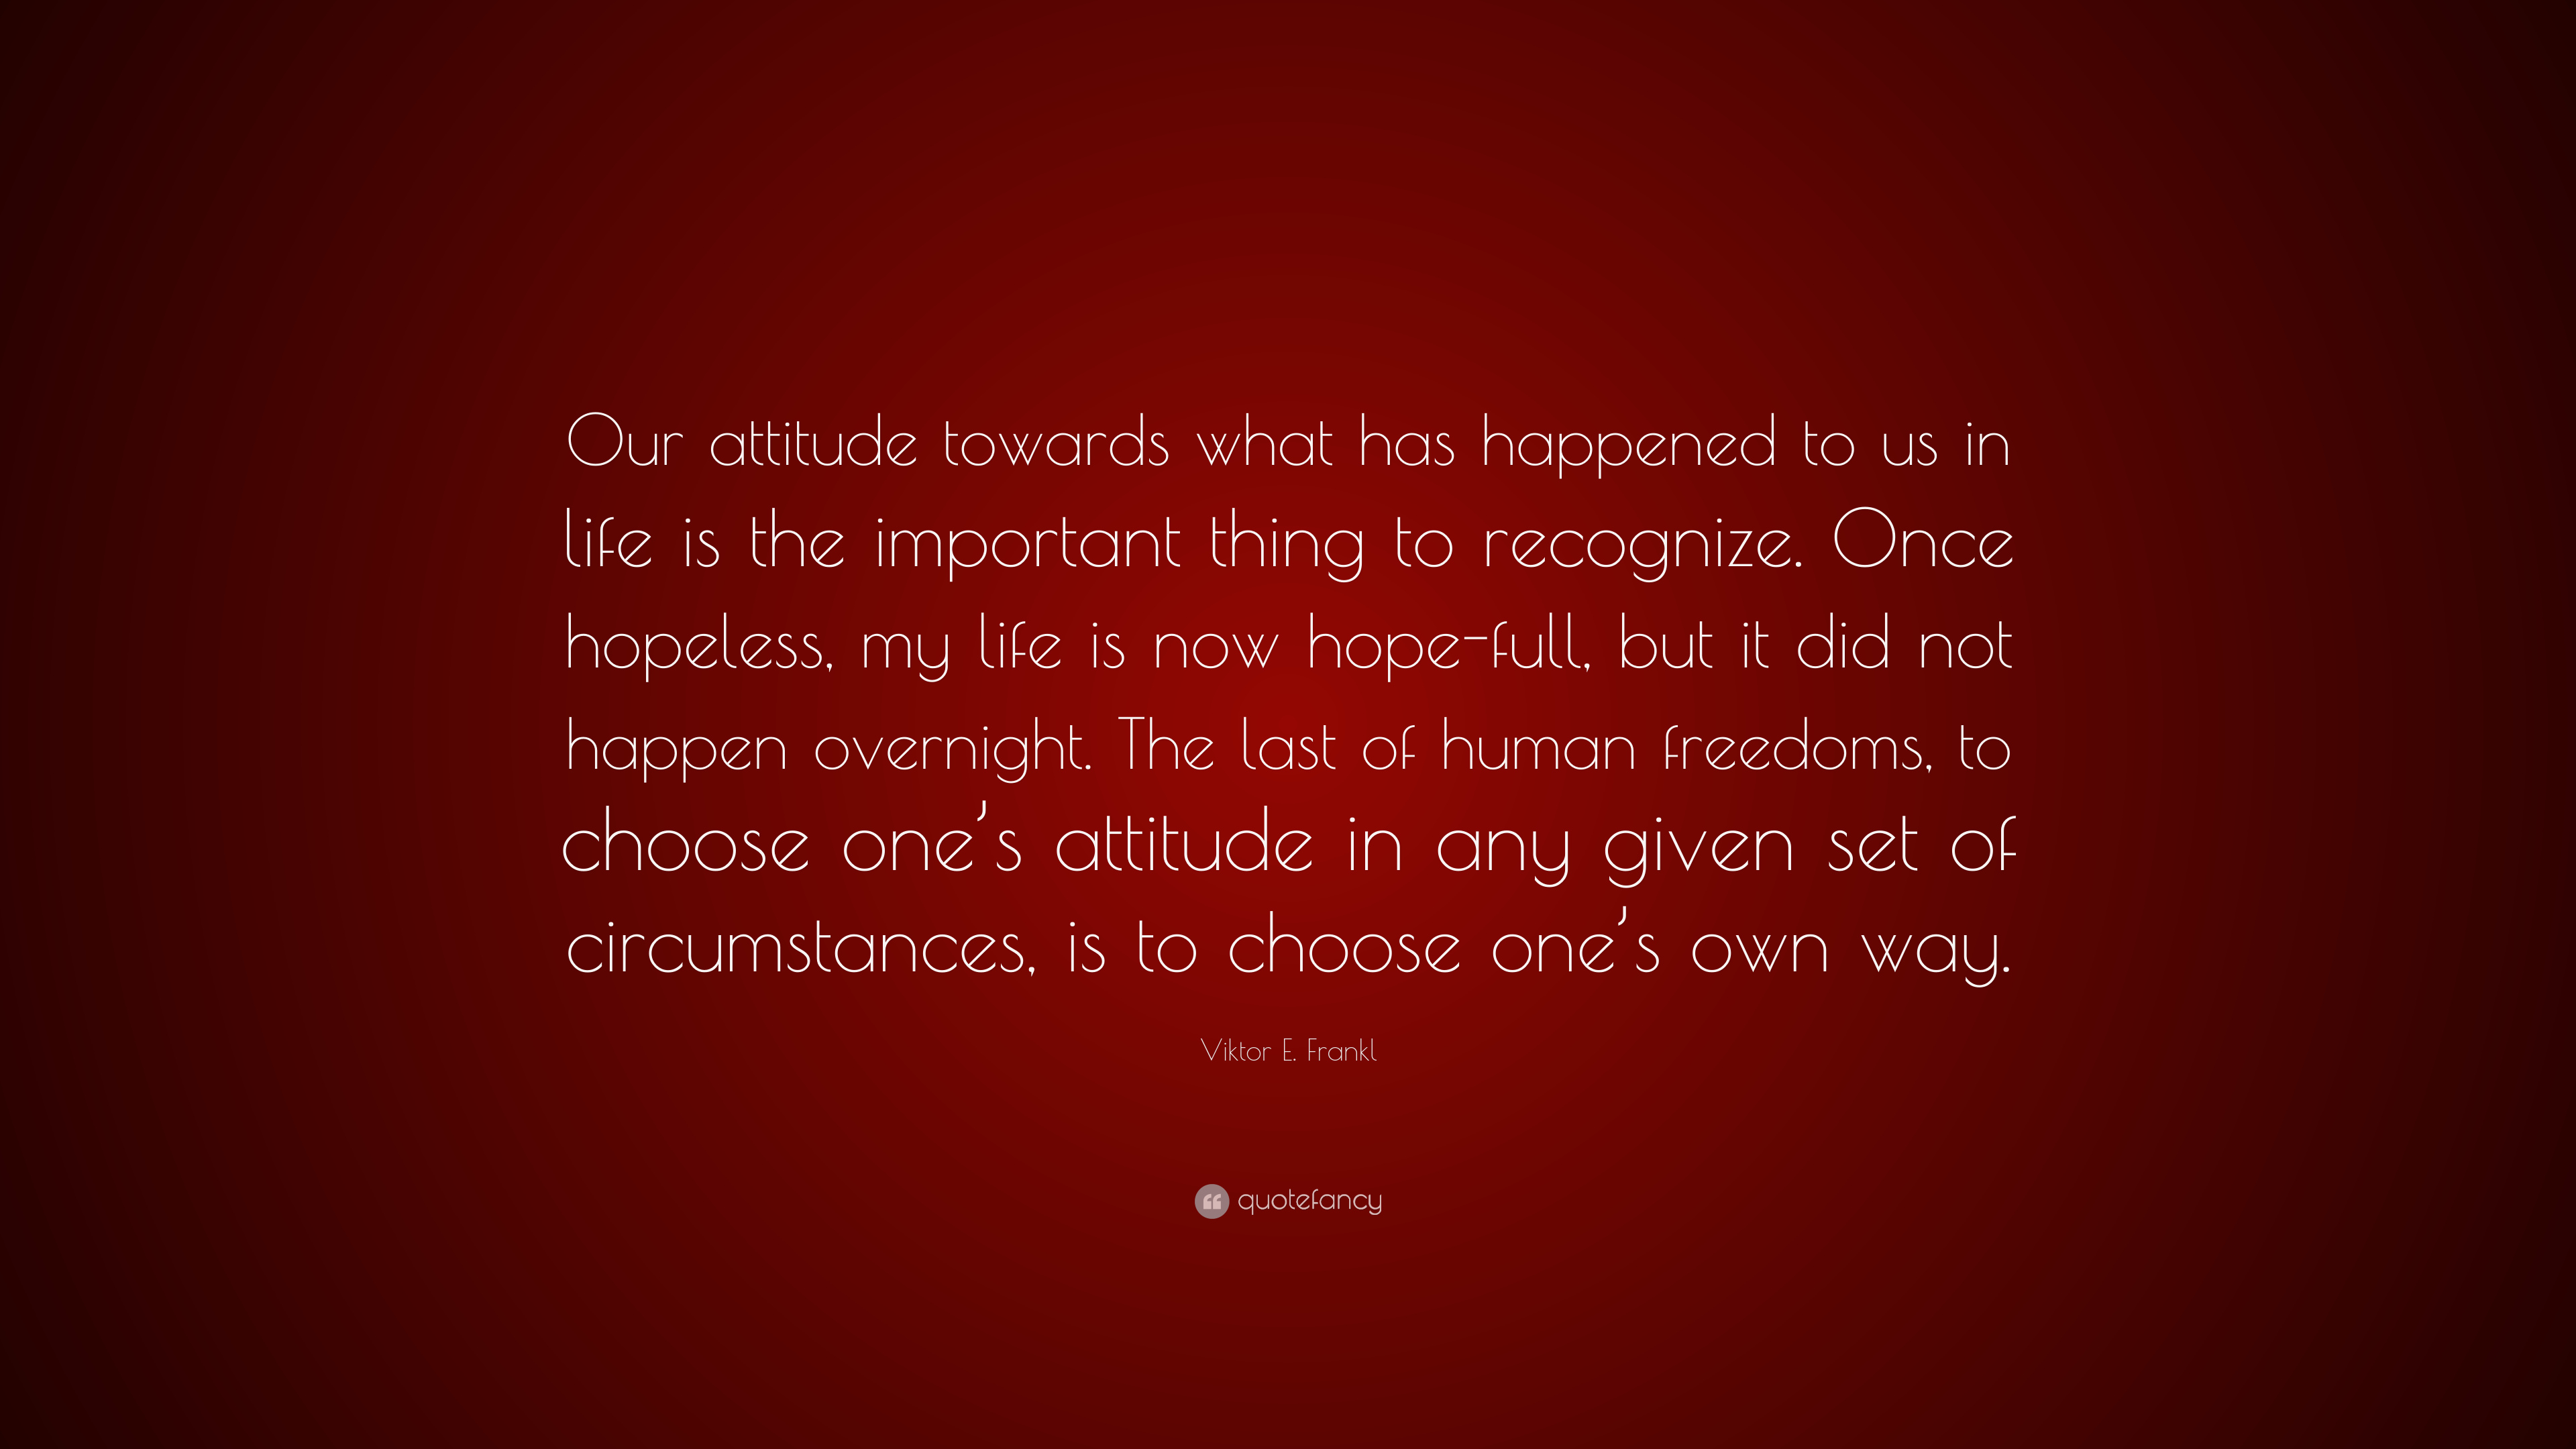 Viktor E Frankl Quote Our Attitude Towards What Has Happened To